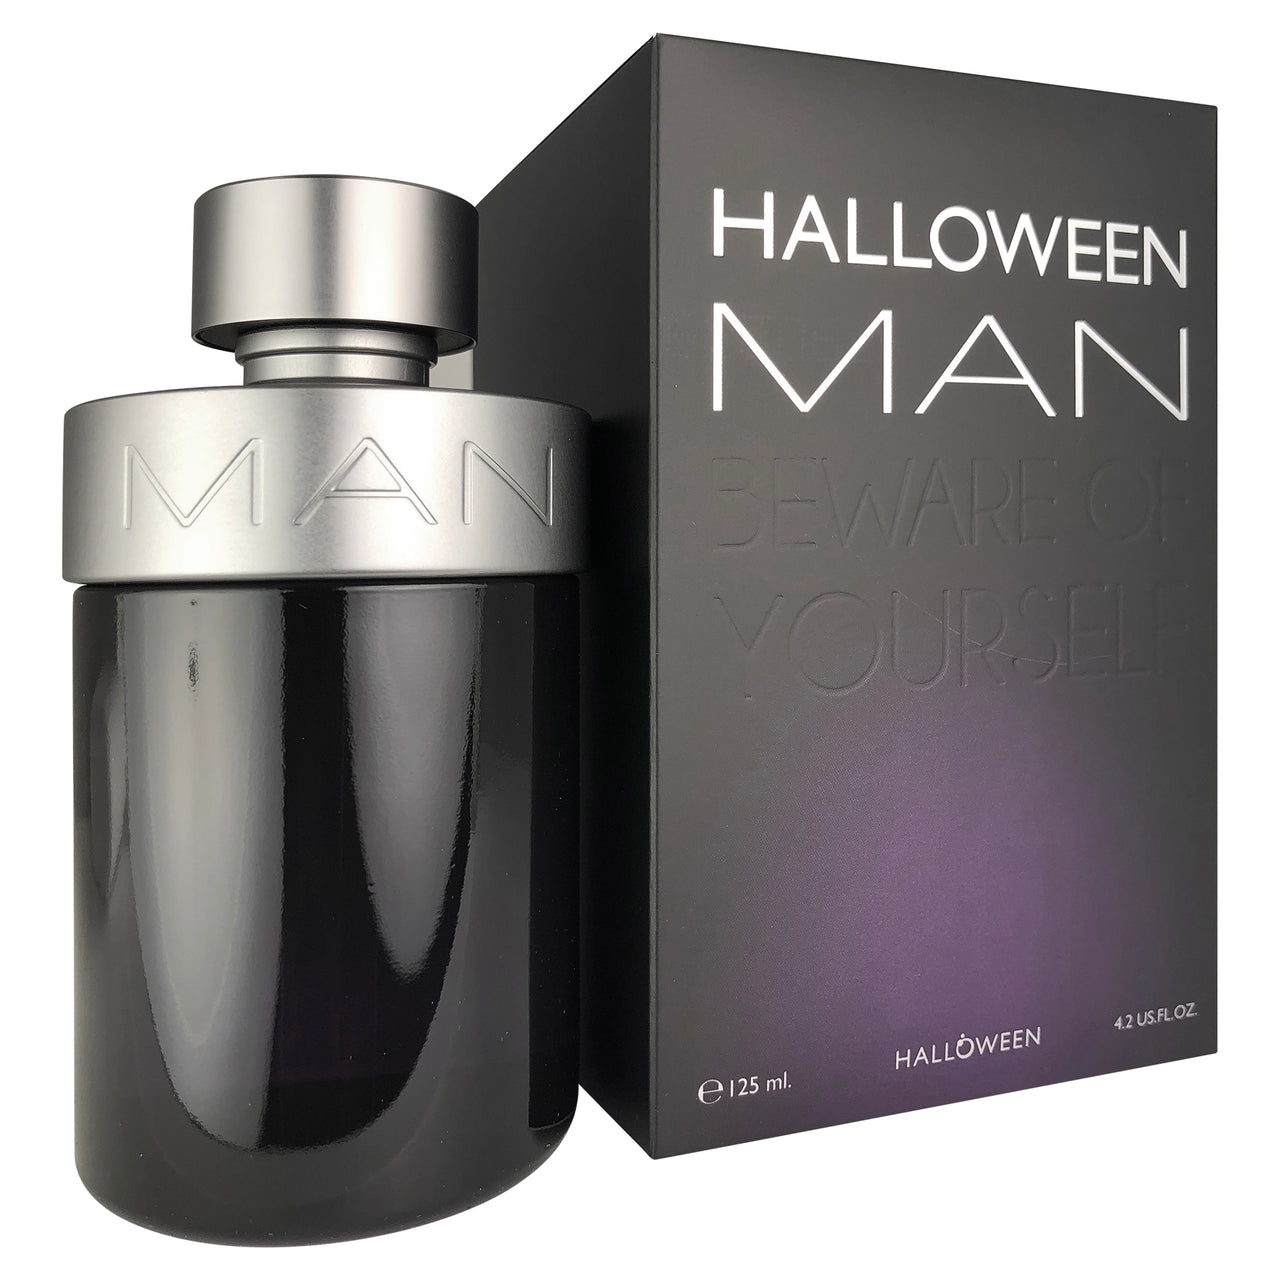 Halloween Man For Men by J Del Pozo 4.2 oz Eau De Toilette Spray